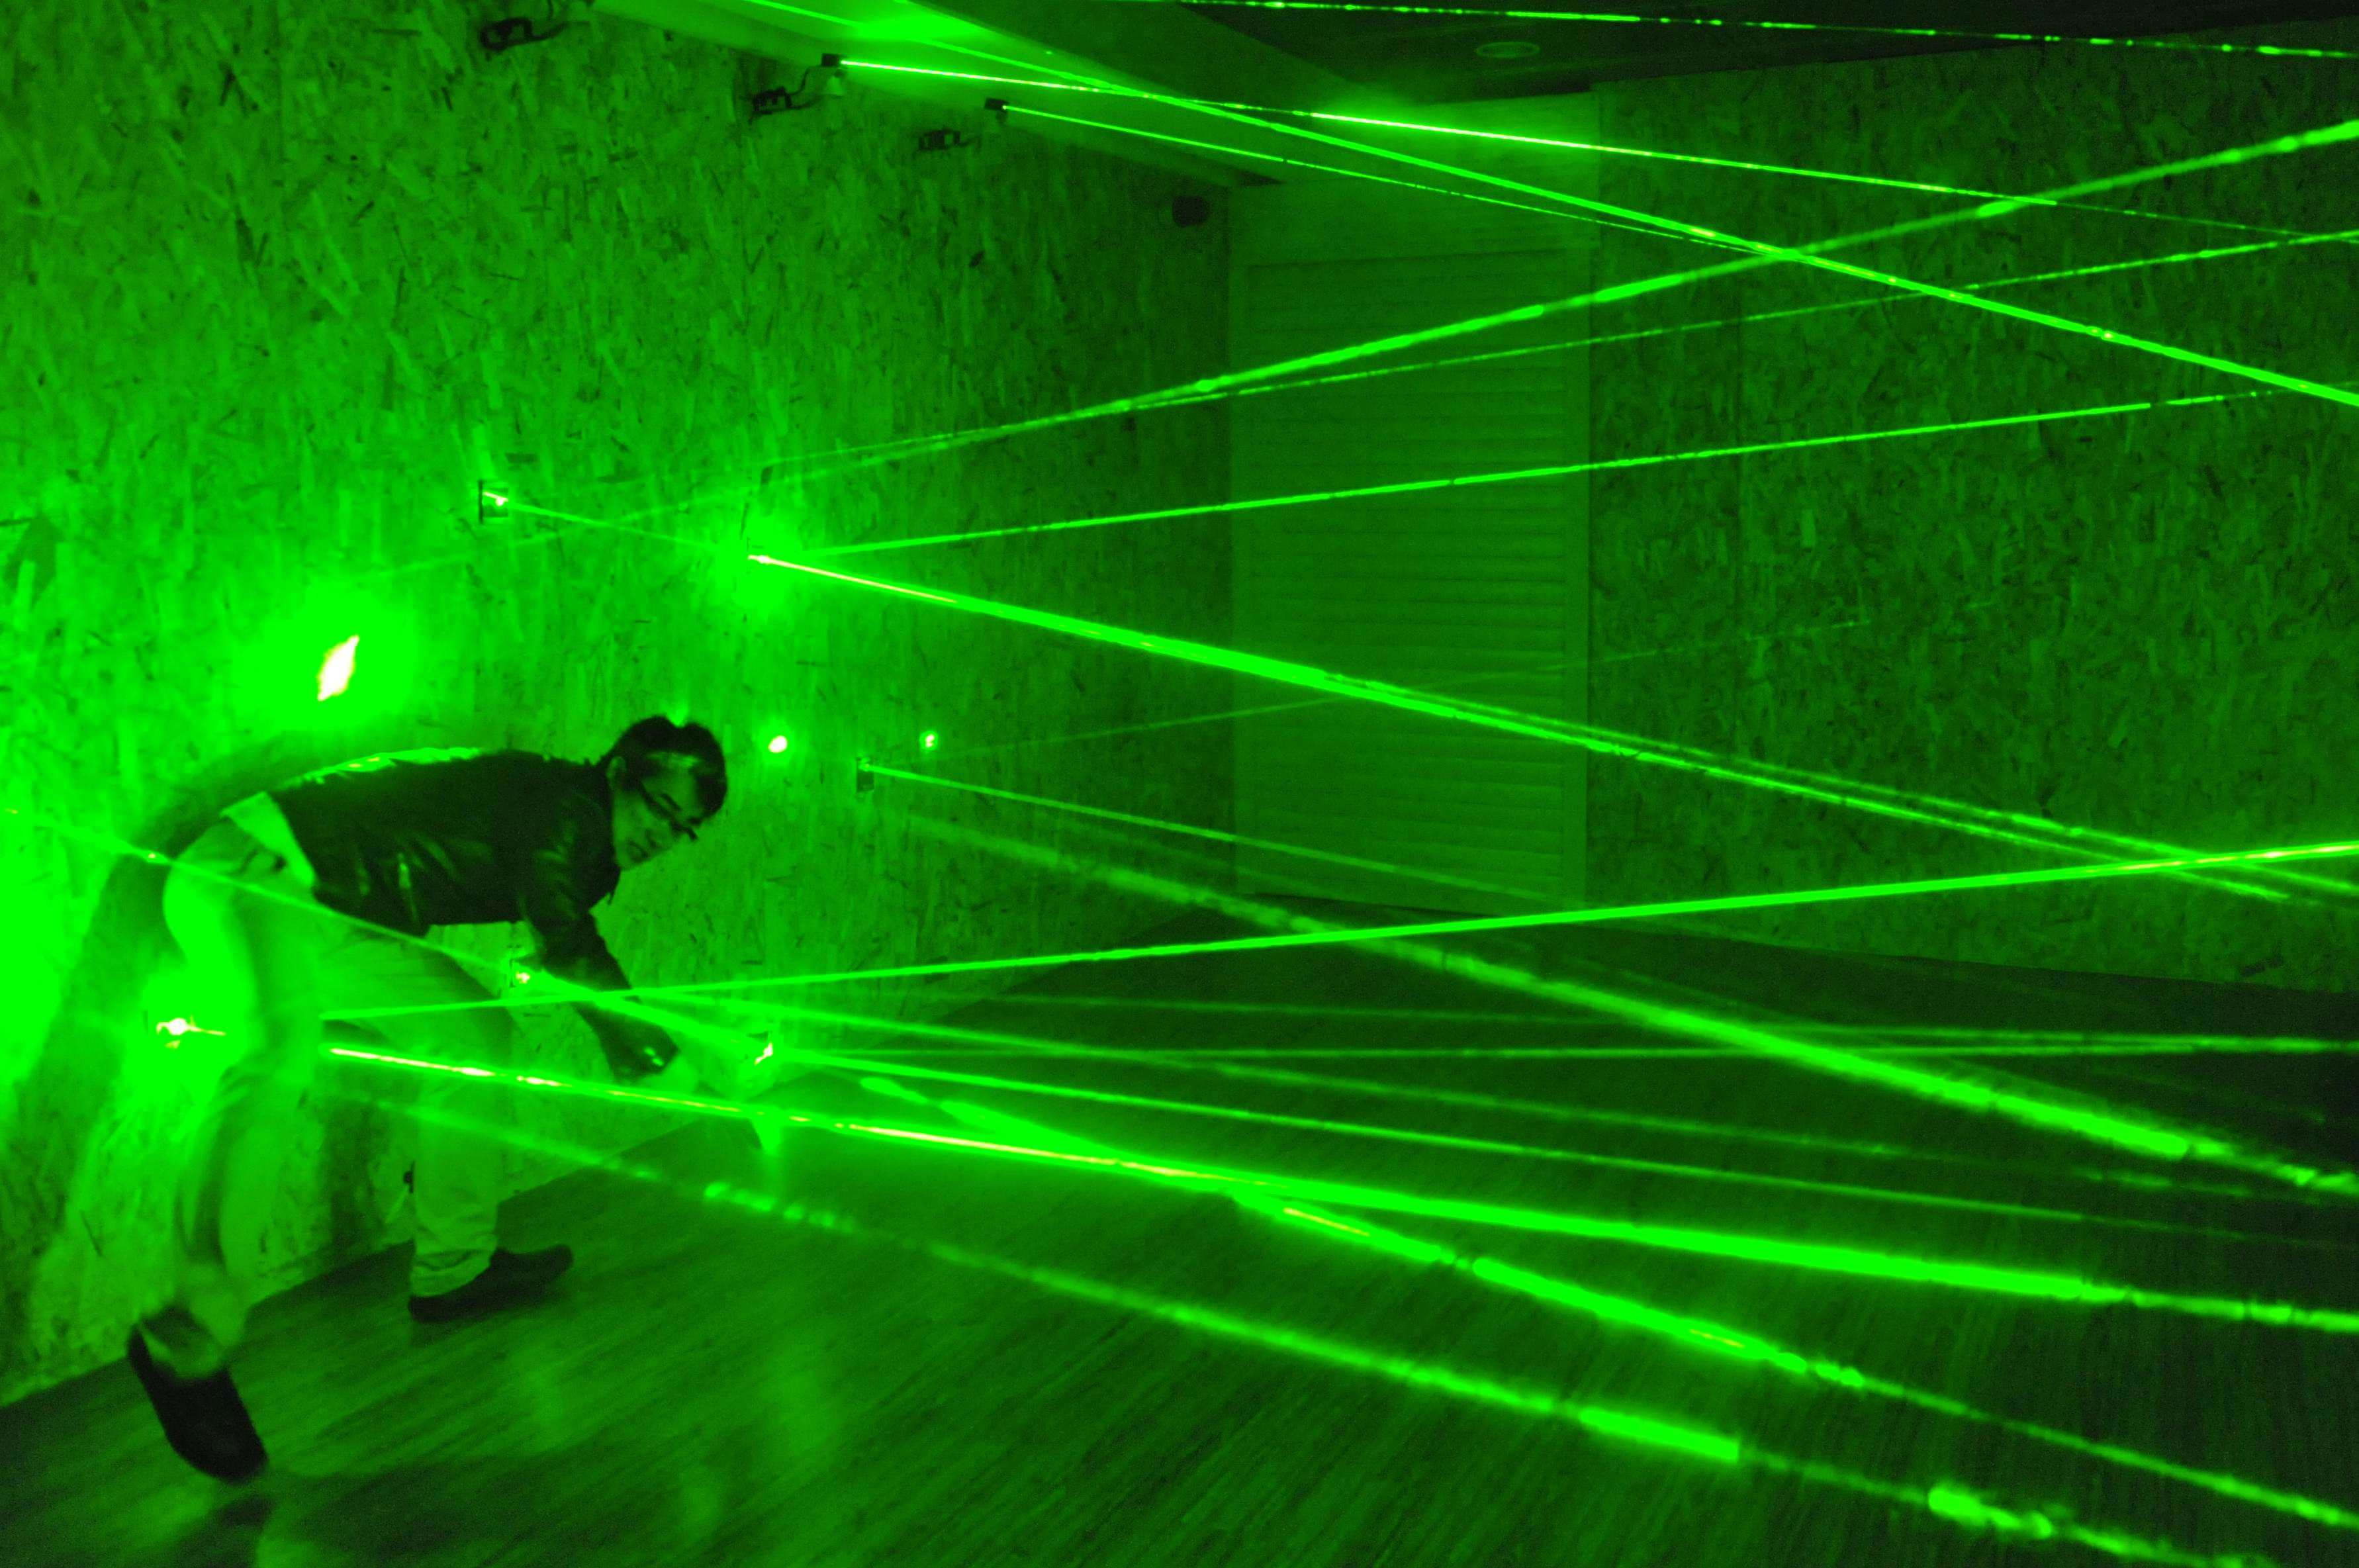 Real life room escape laser array props Laser maze for Takagism game room and door game escape from the green laser room